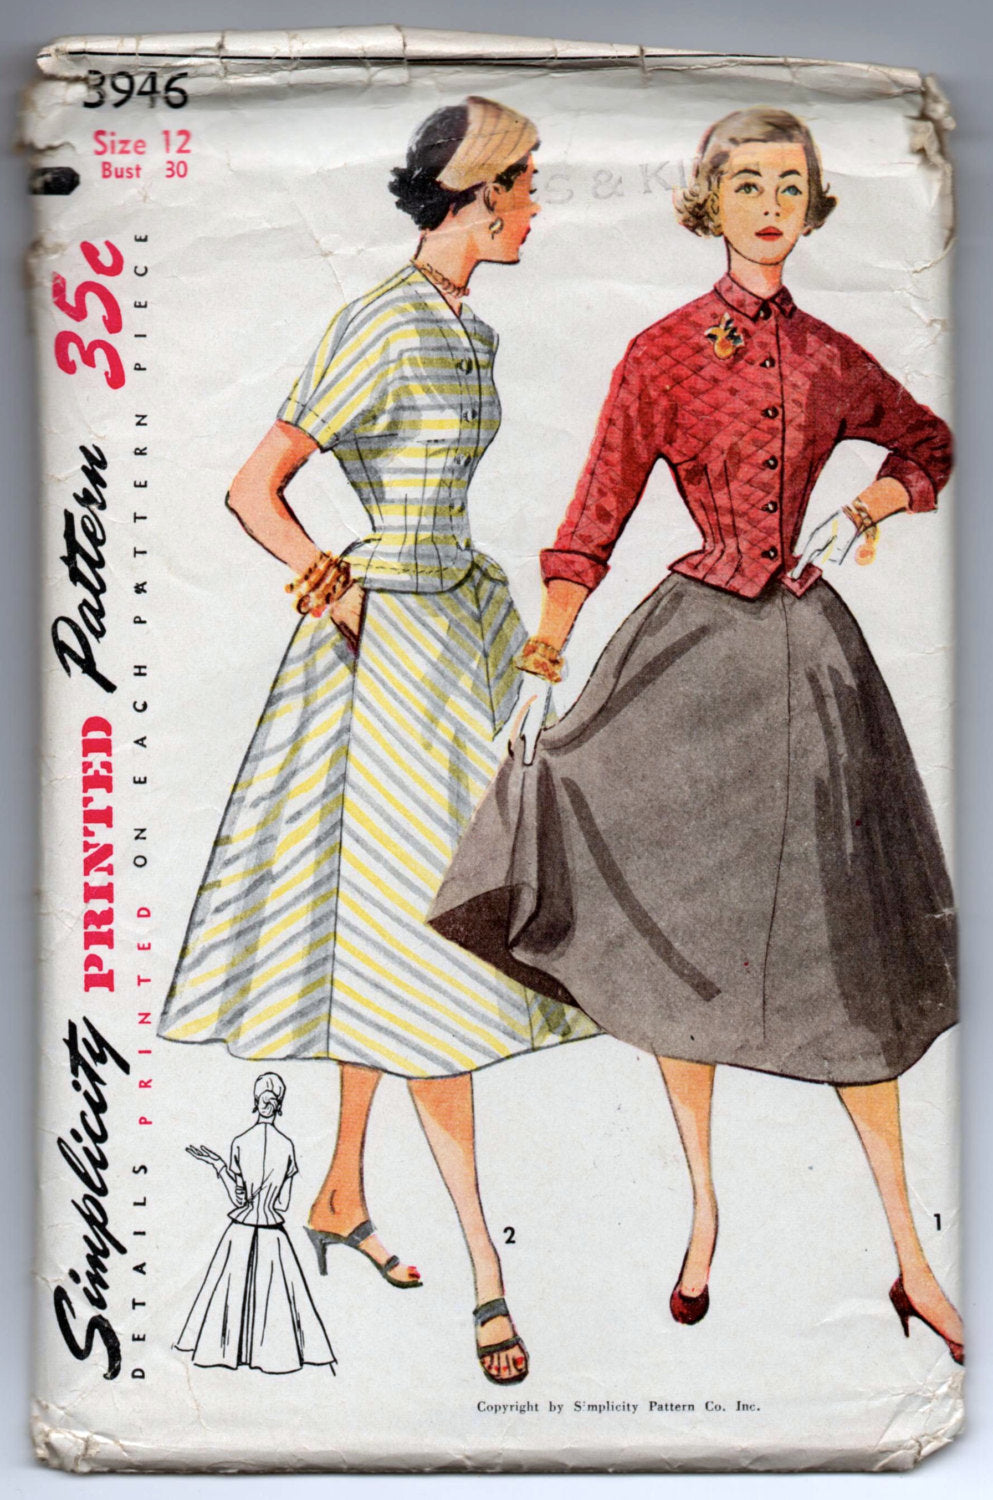 1950's Simplicity Two-Piece Dress Pattern - Bust 30